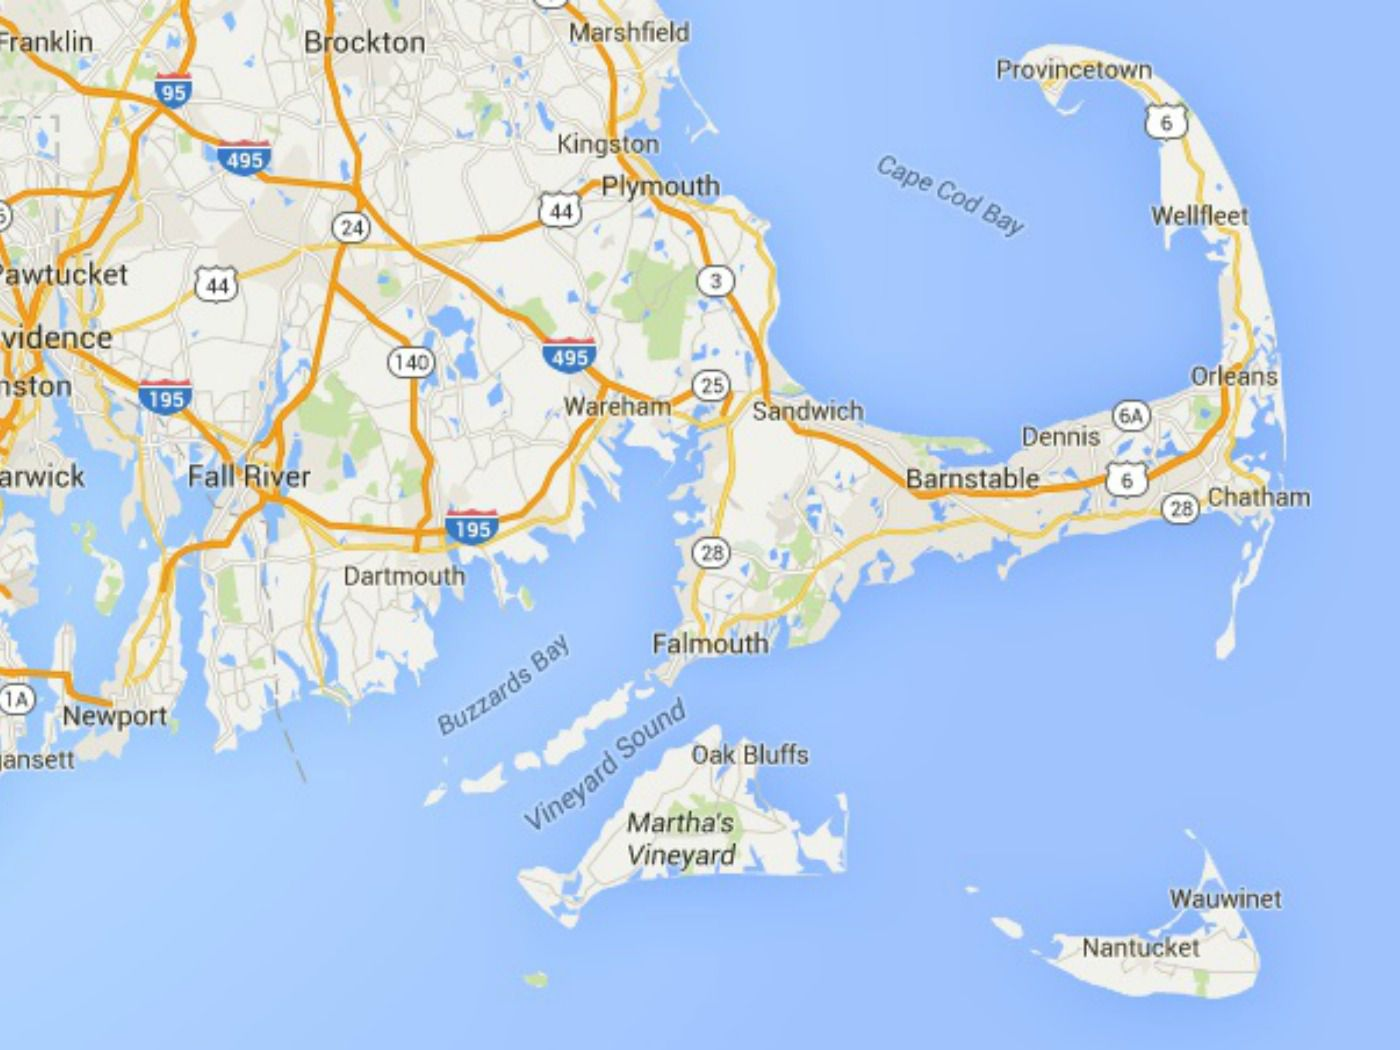 Maps Of Cape Cod Marthas Vineyard And Nantucket - Cape cod location us map